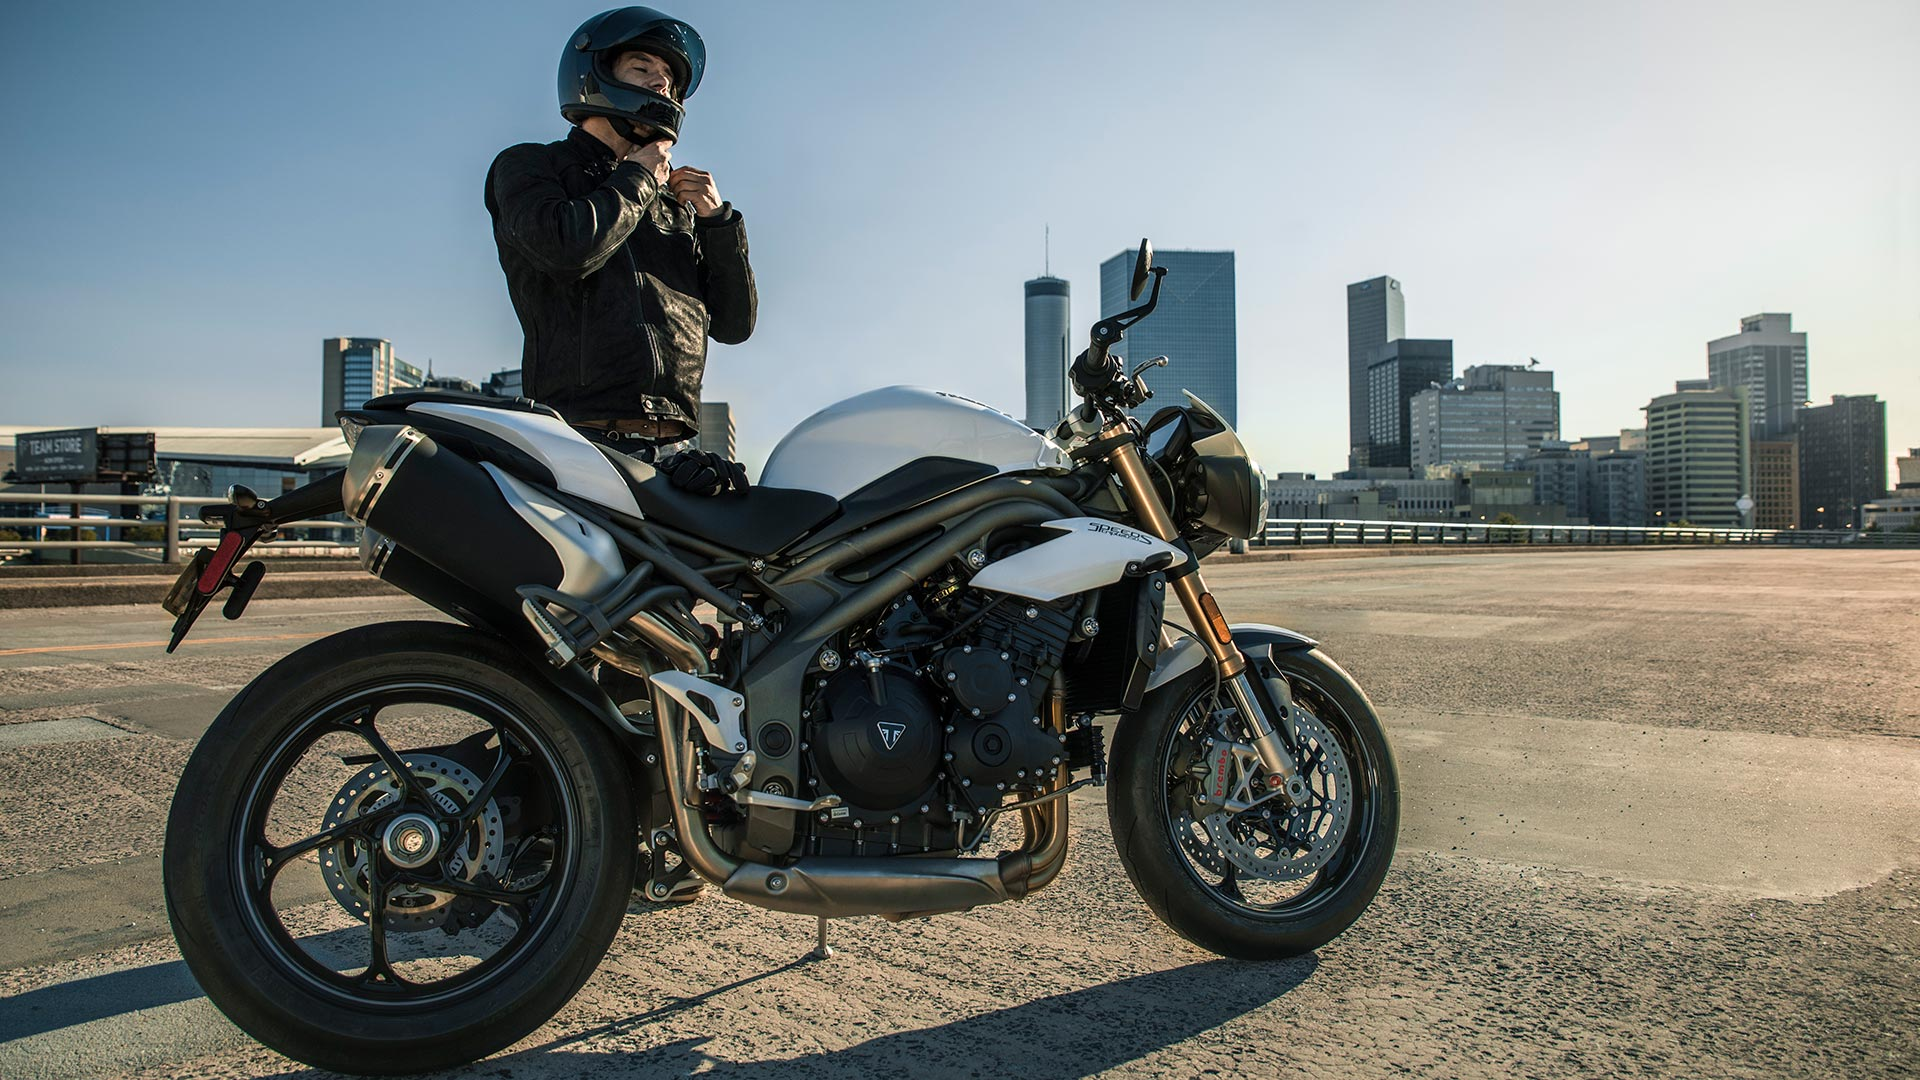 A view of a rider enjoying the 2021 Triumph Speed Triple S